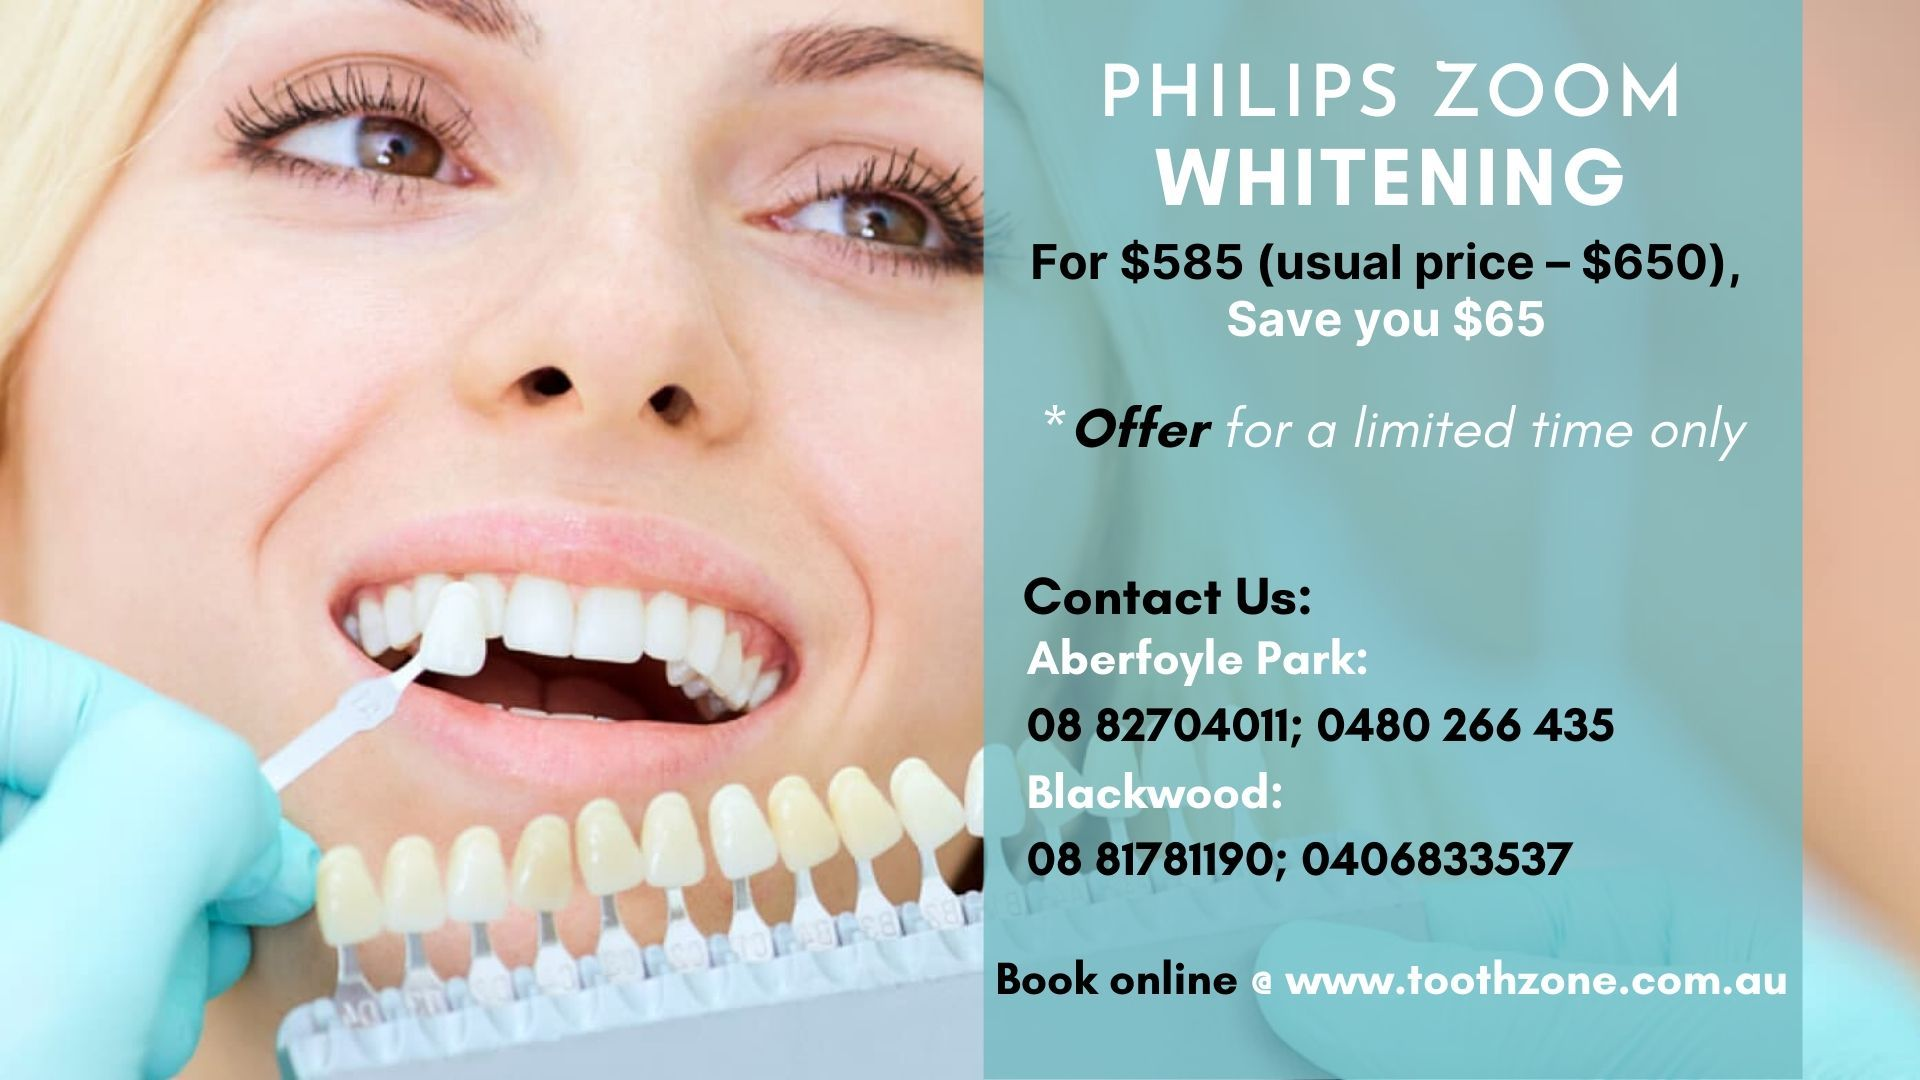 Teeth Whitening In Adelaide's South - Aldinga Dental Cinic - Call Us Today